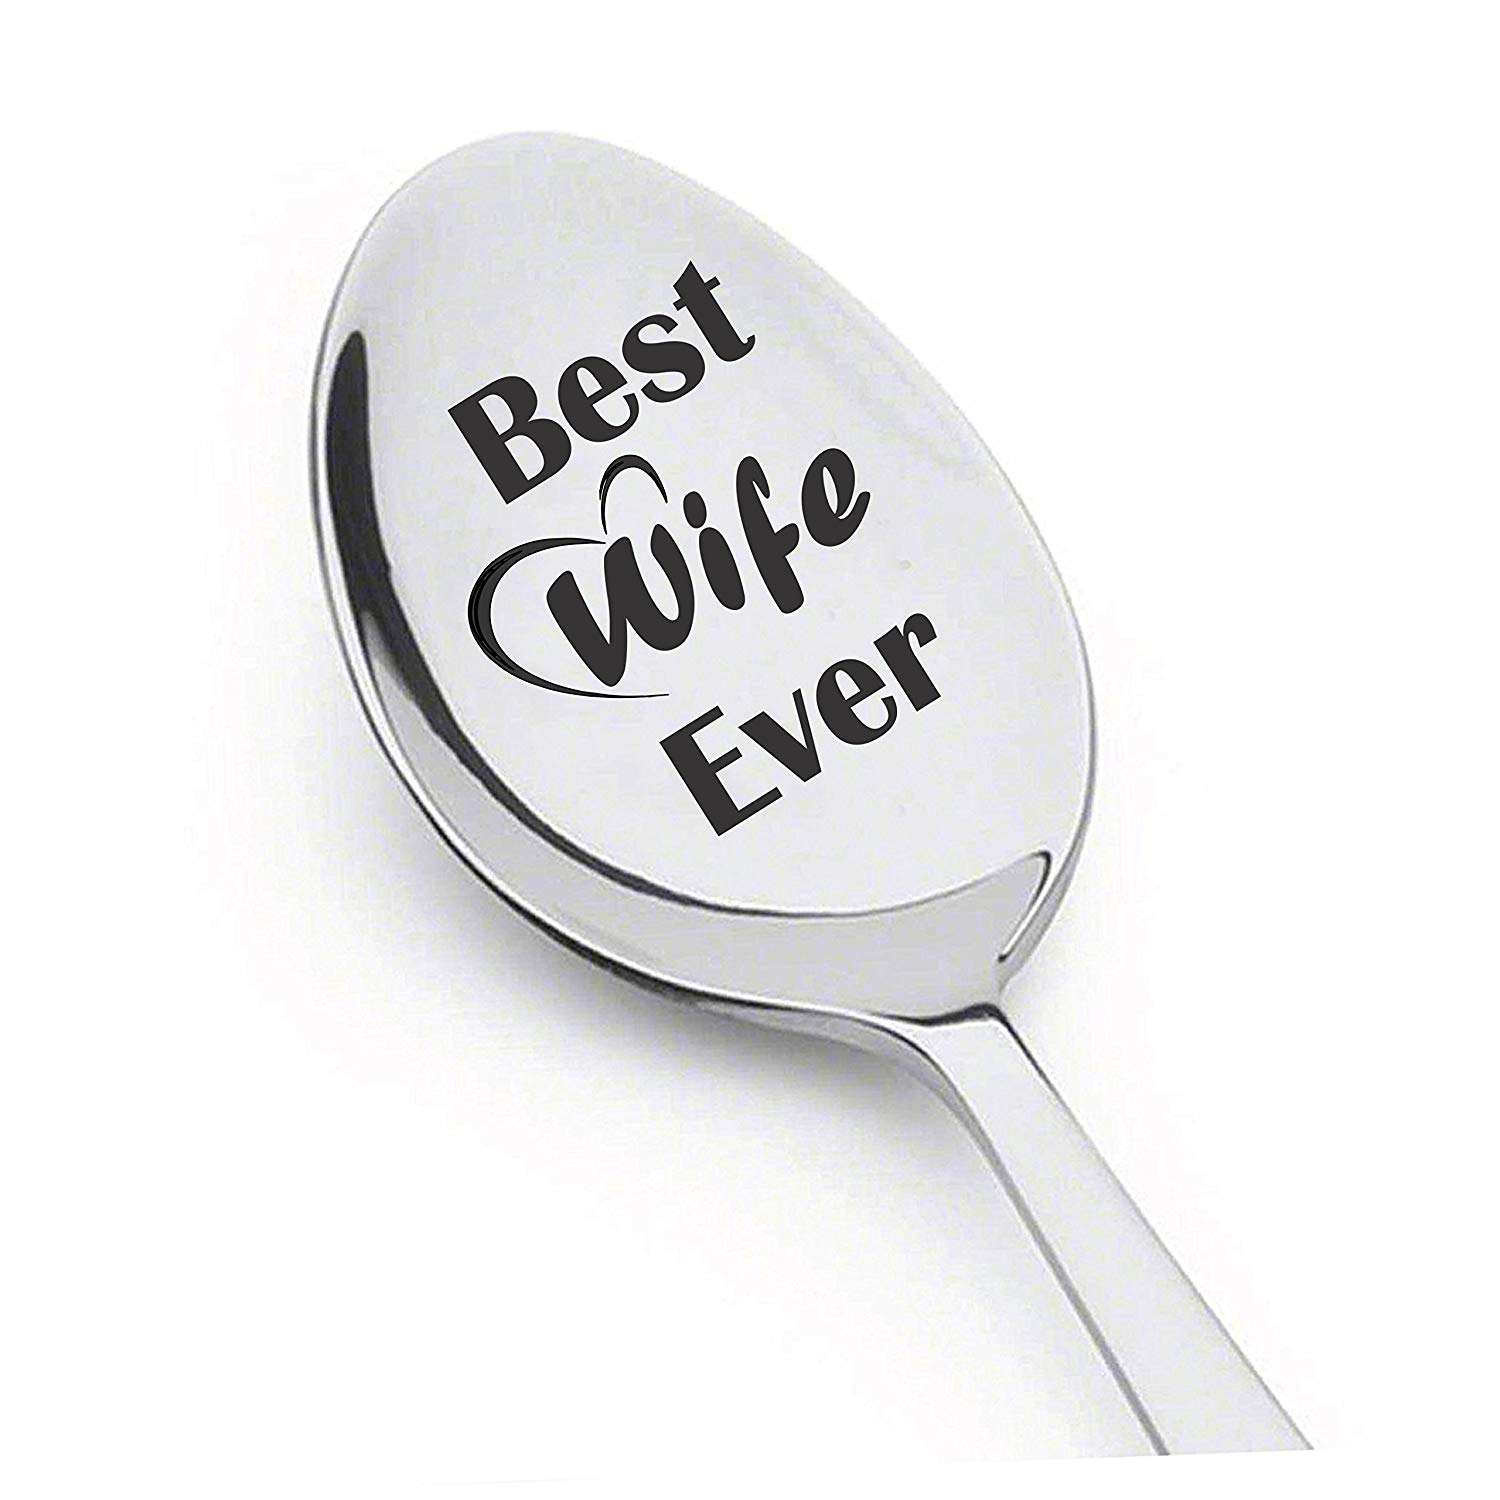 Best Wife Ever Customized spoon with Quotes for Mom's Birthday, Spoon Gift for Women, Wife Gift Ideas for Christmas and Valentines Day, Novelty Engraved Spoon